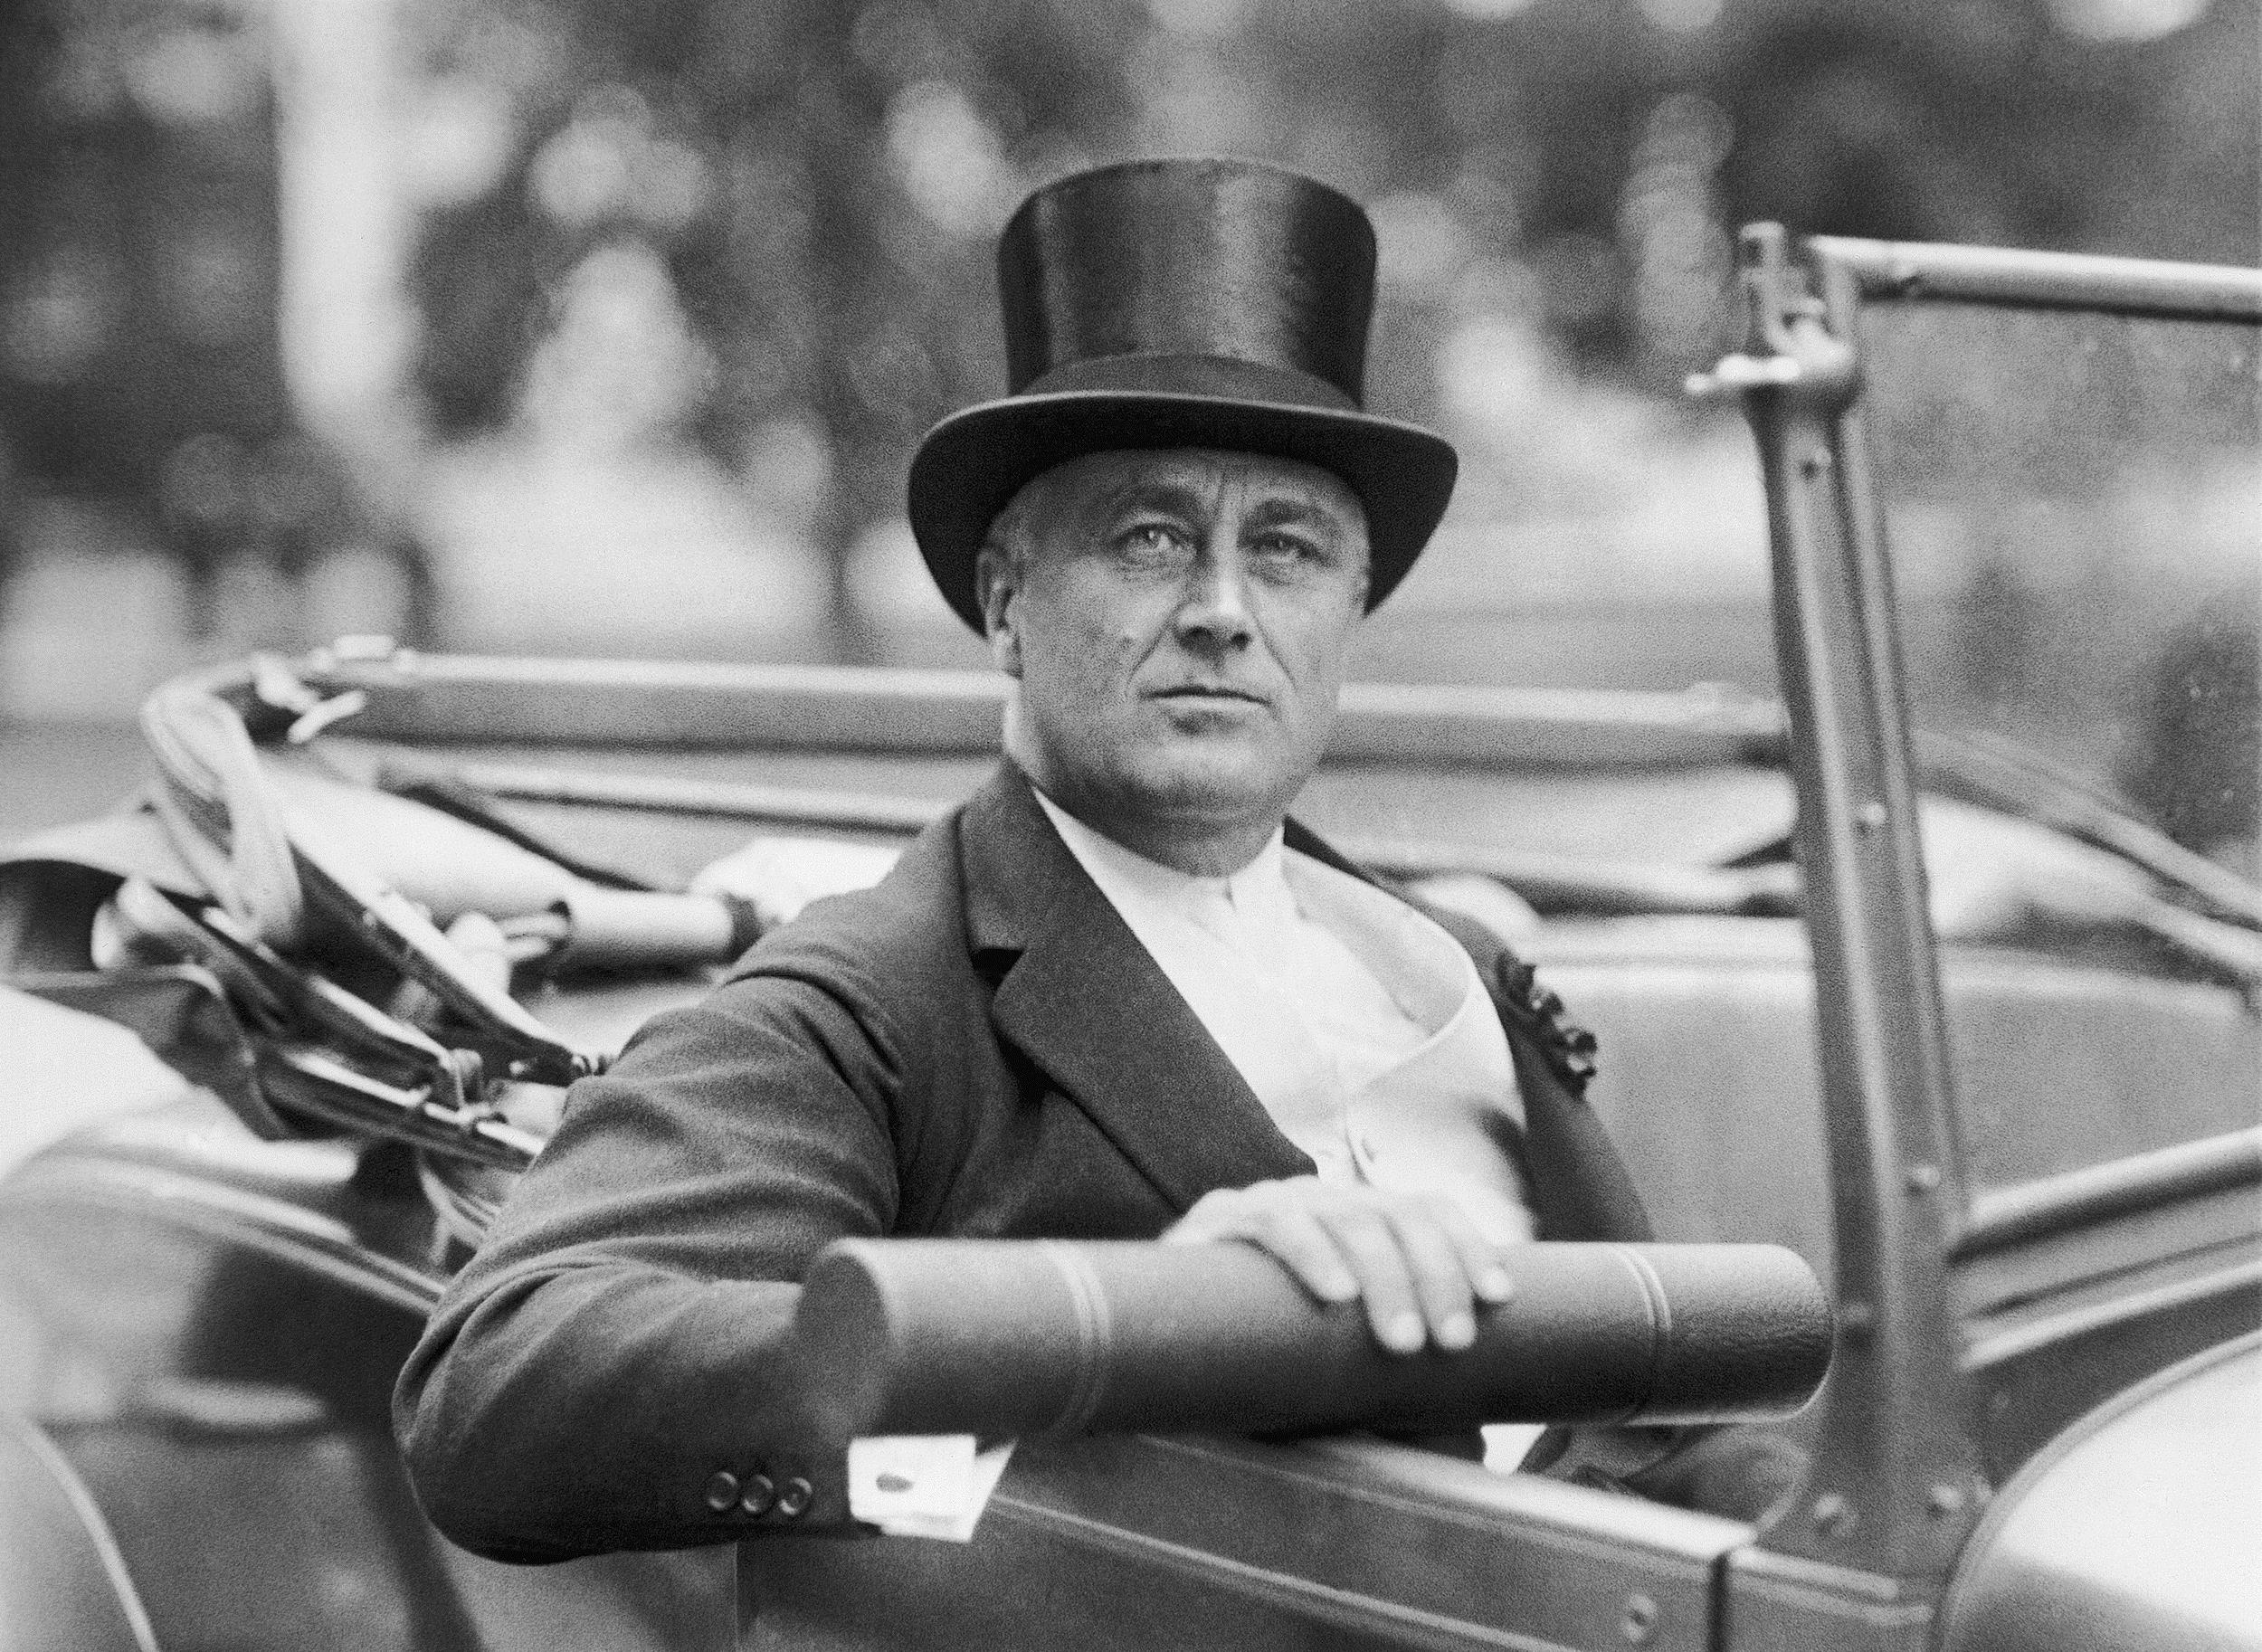 franklin delano roosevelt and woodrow wilson essay Comparison fdr and wilson essays although the united i believe that two of best united states' presidents were franklin delano roosevelt or fdr, and woodrow.